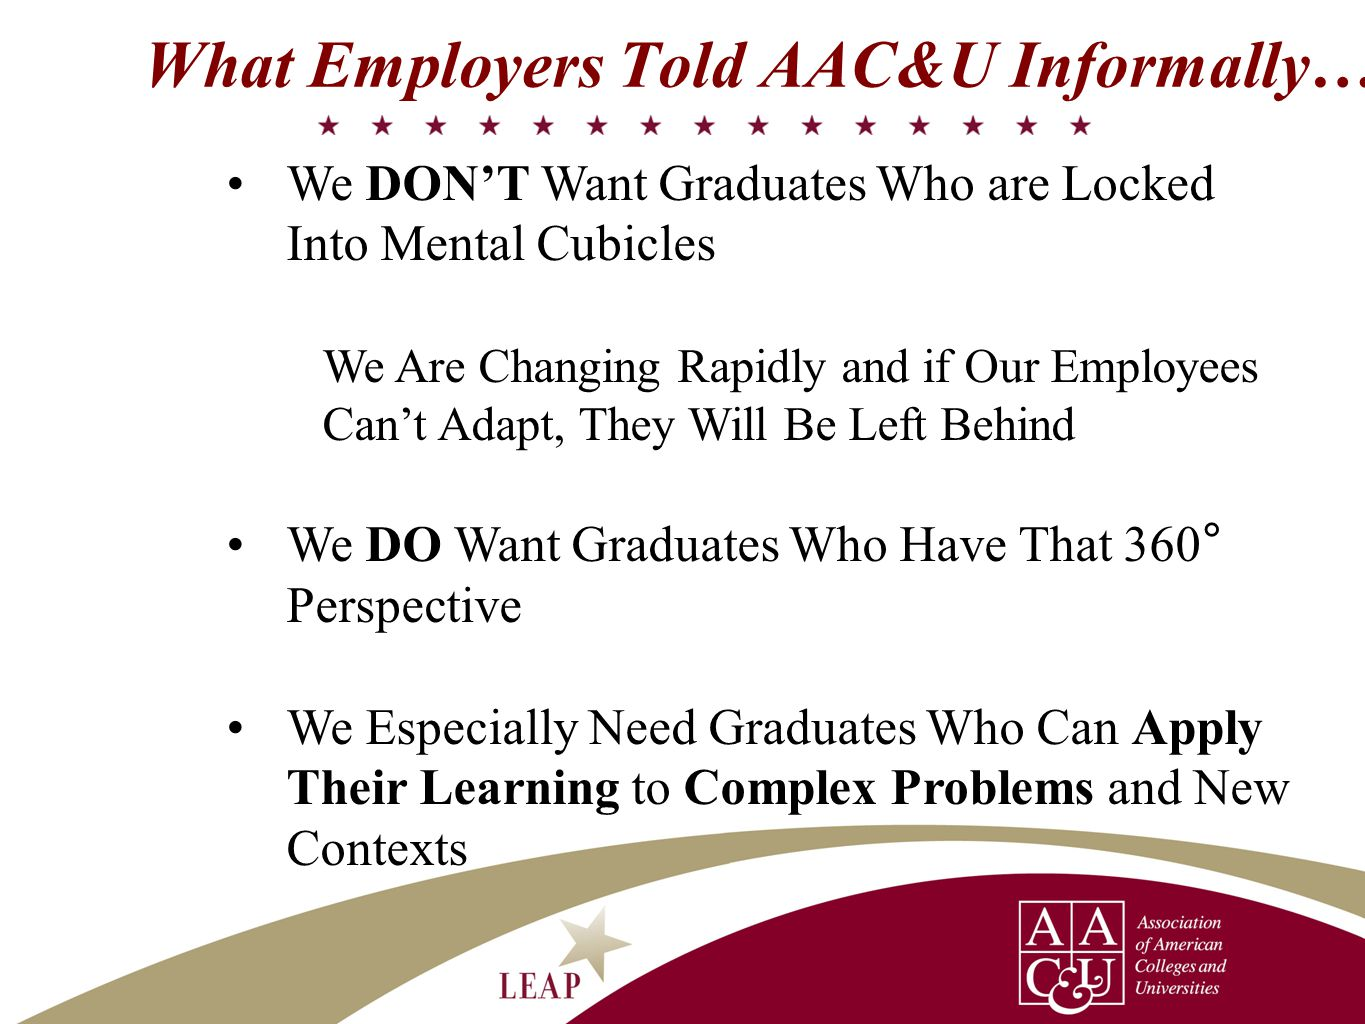 We DON'T Want Graduates Who are Locked Into Mental Cubicles We Are Changing Rapidly and if Our Employees Can't Adapt, They Will Be Left Behind We DO Want Graduates Who Have That 360 ° Perspective We Especially Need Graduates Who Can Apply Their Learning to Complex Problems and New Contexts What Employers Told AAC&U Informally…